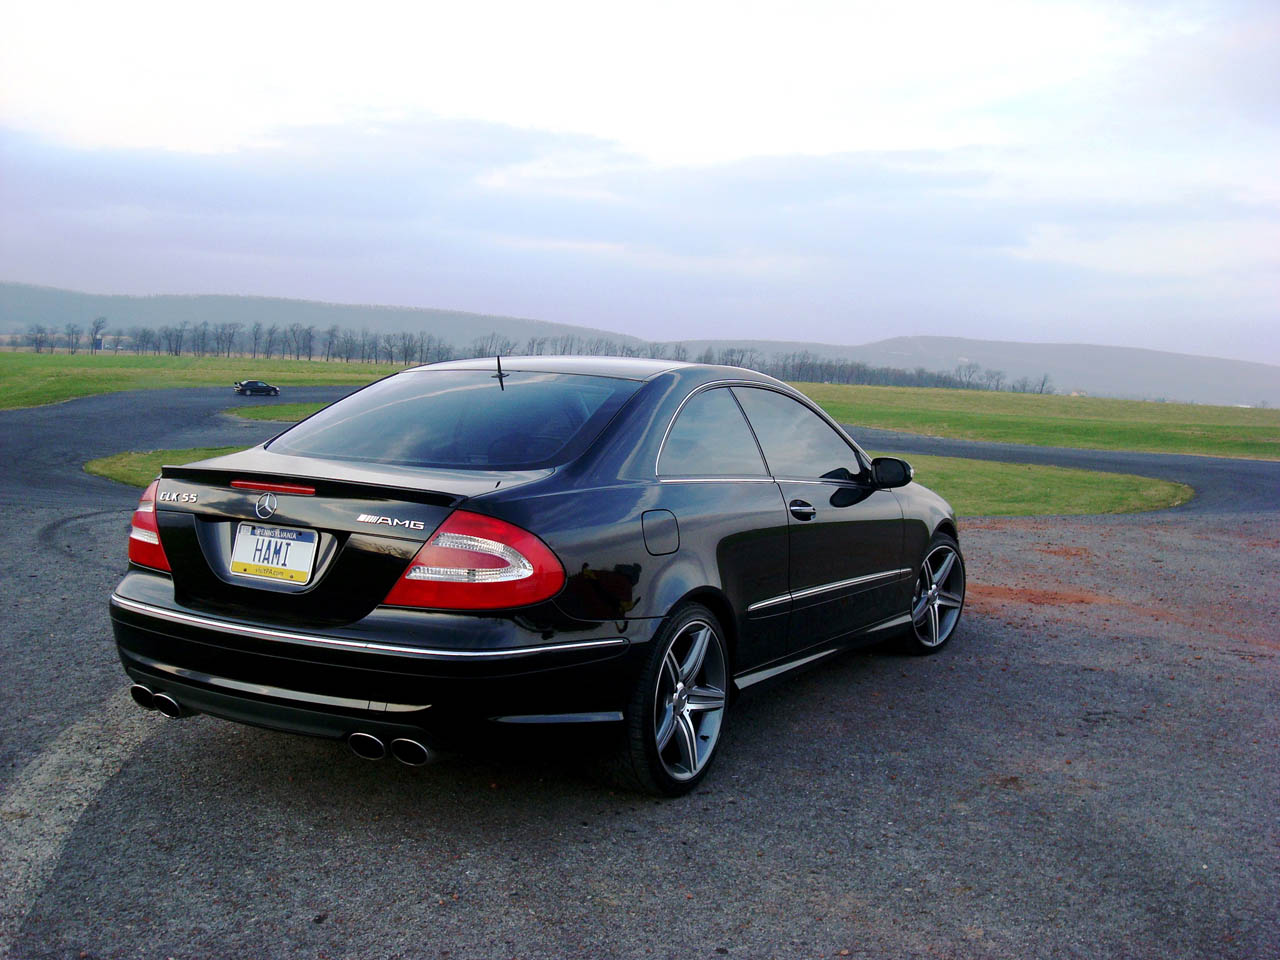 2005 mercedes benz clk55 amg 1 4 mile trap speeds 0 60. Black Bedroom Furniture Sets. Home Design Ideas